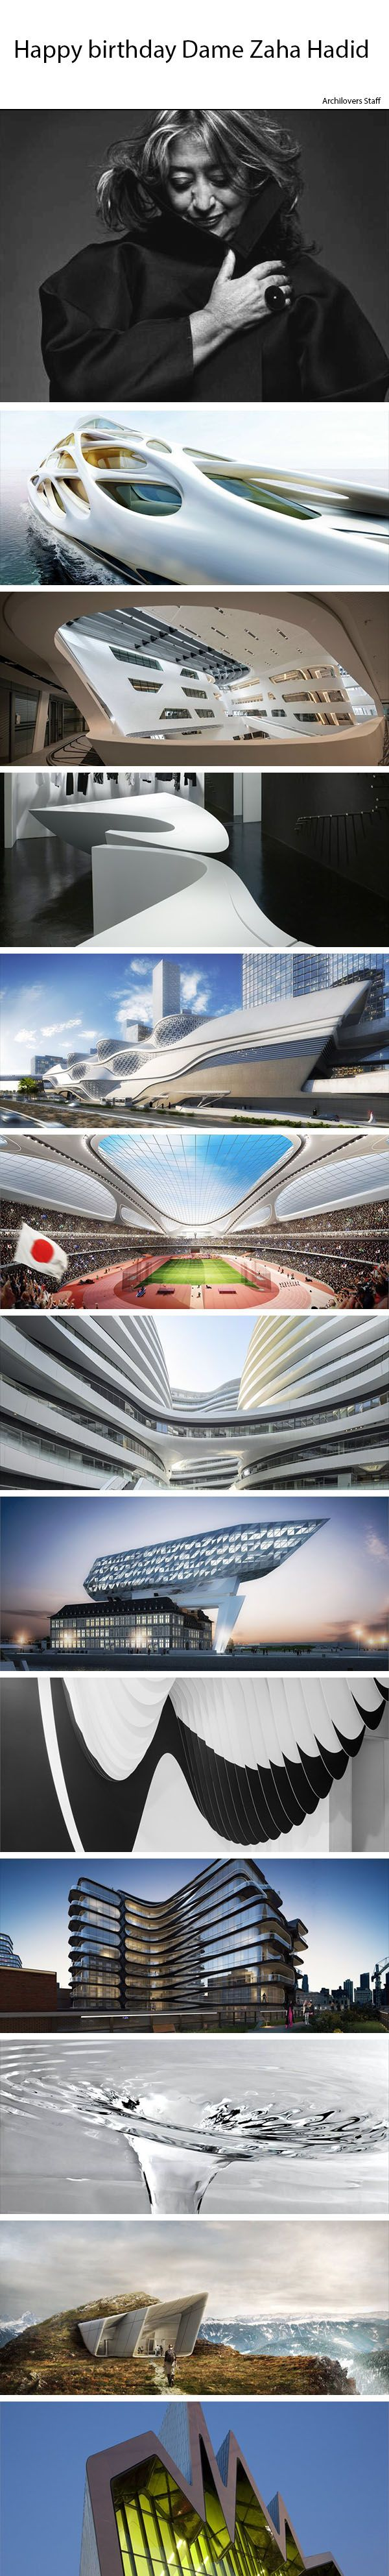 Happy birthday Dame Zaha Hadid!   Check out the 80 projects by Zaha Hadid Architects on Archilovers: http://www.archilovers.com/zaha-hadid/  #zahahadid #architects #architecture #legend